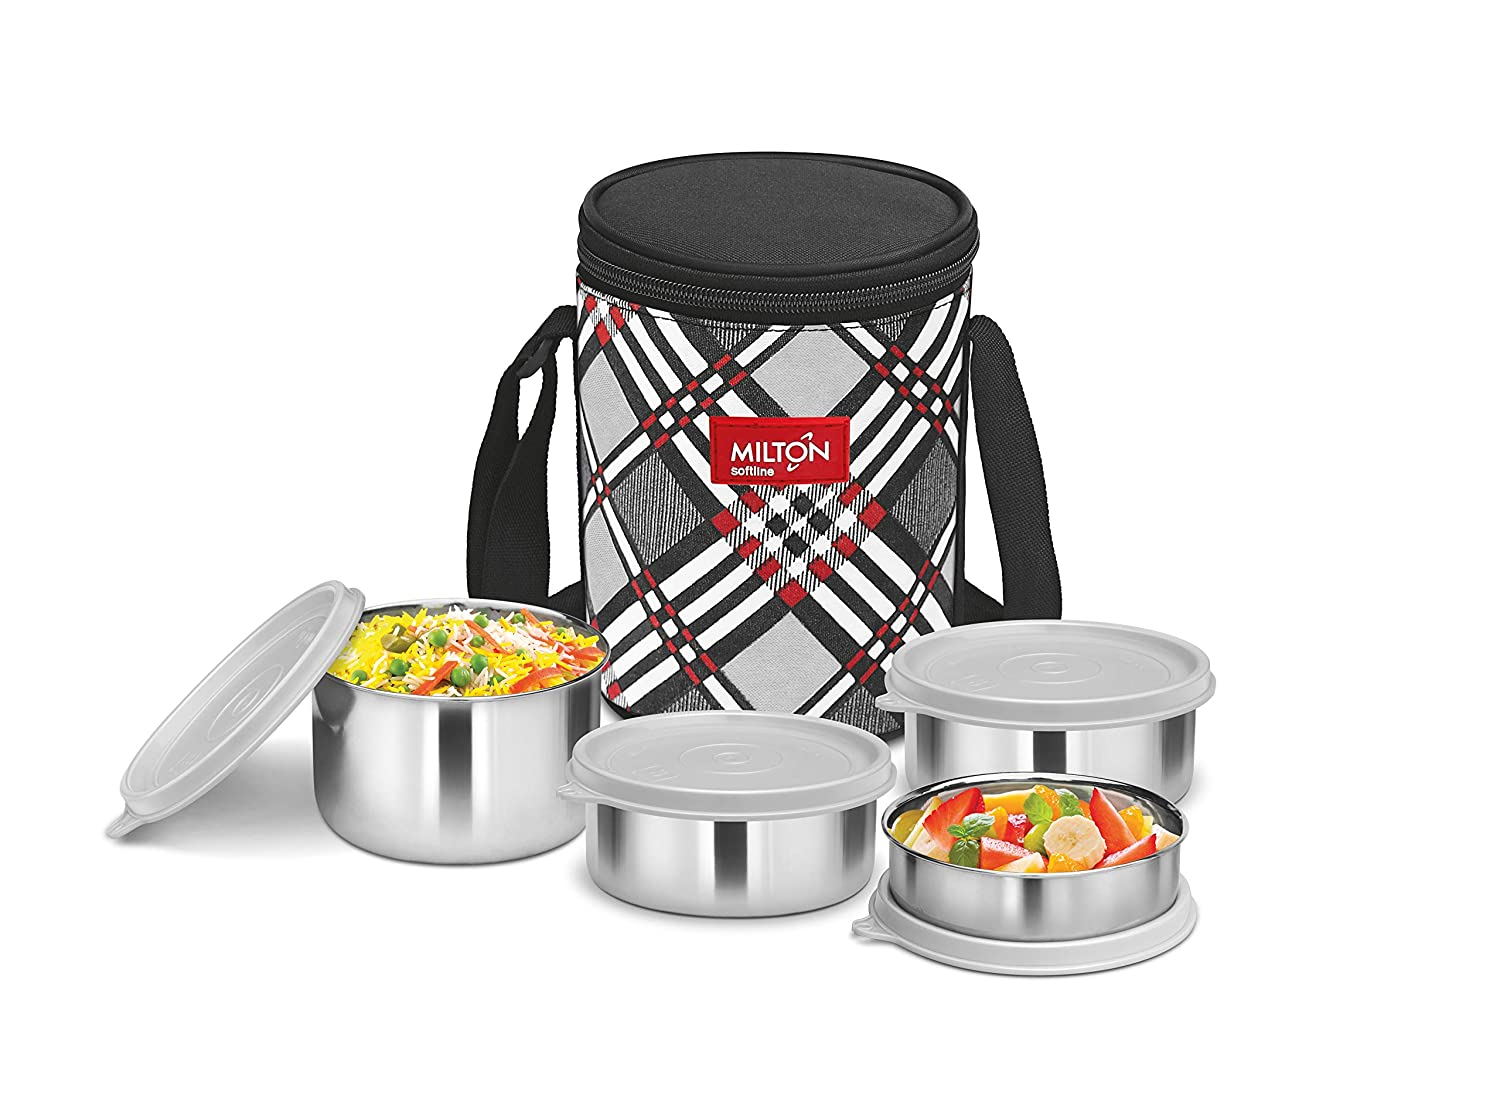 Milton Smart Meal Lunch Box, Set Of 4, Grey